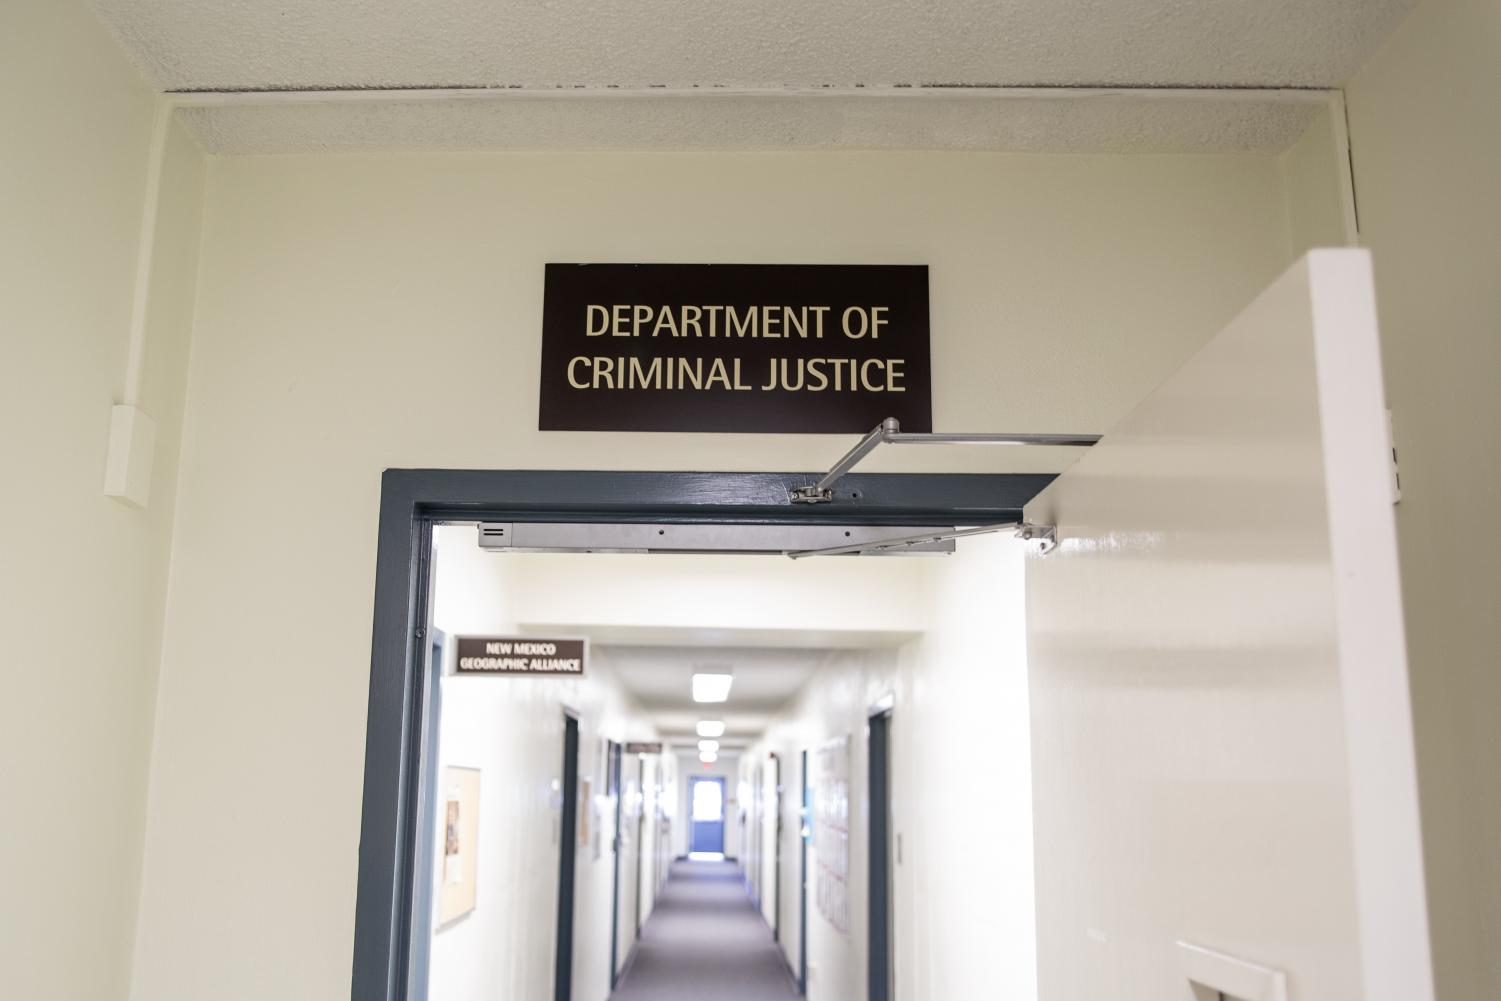 The criminal justice department is located in Breland Hall on campus.